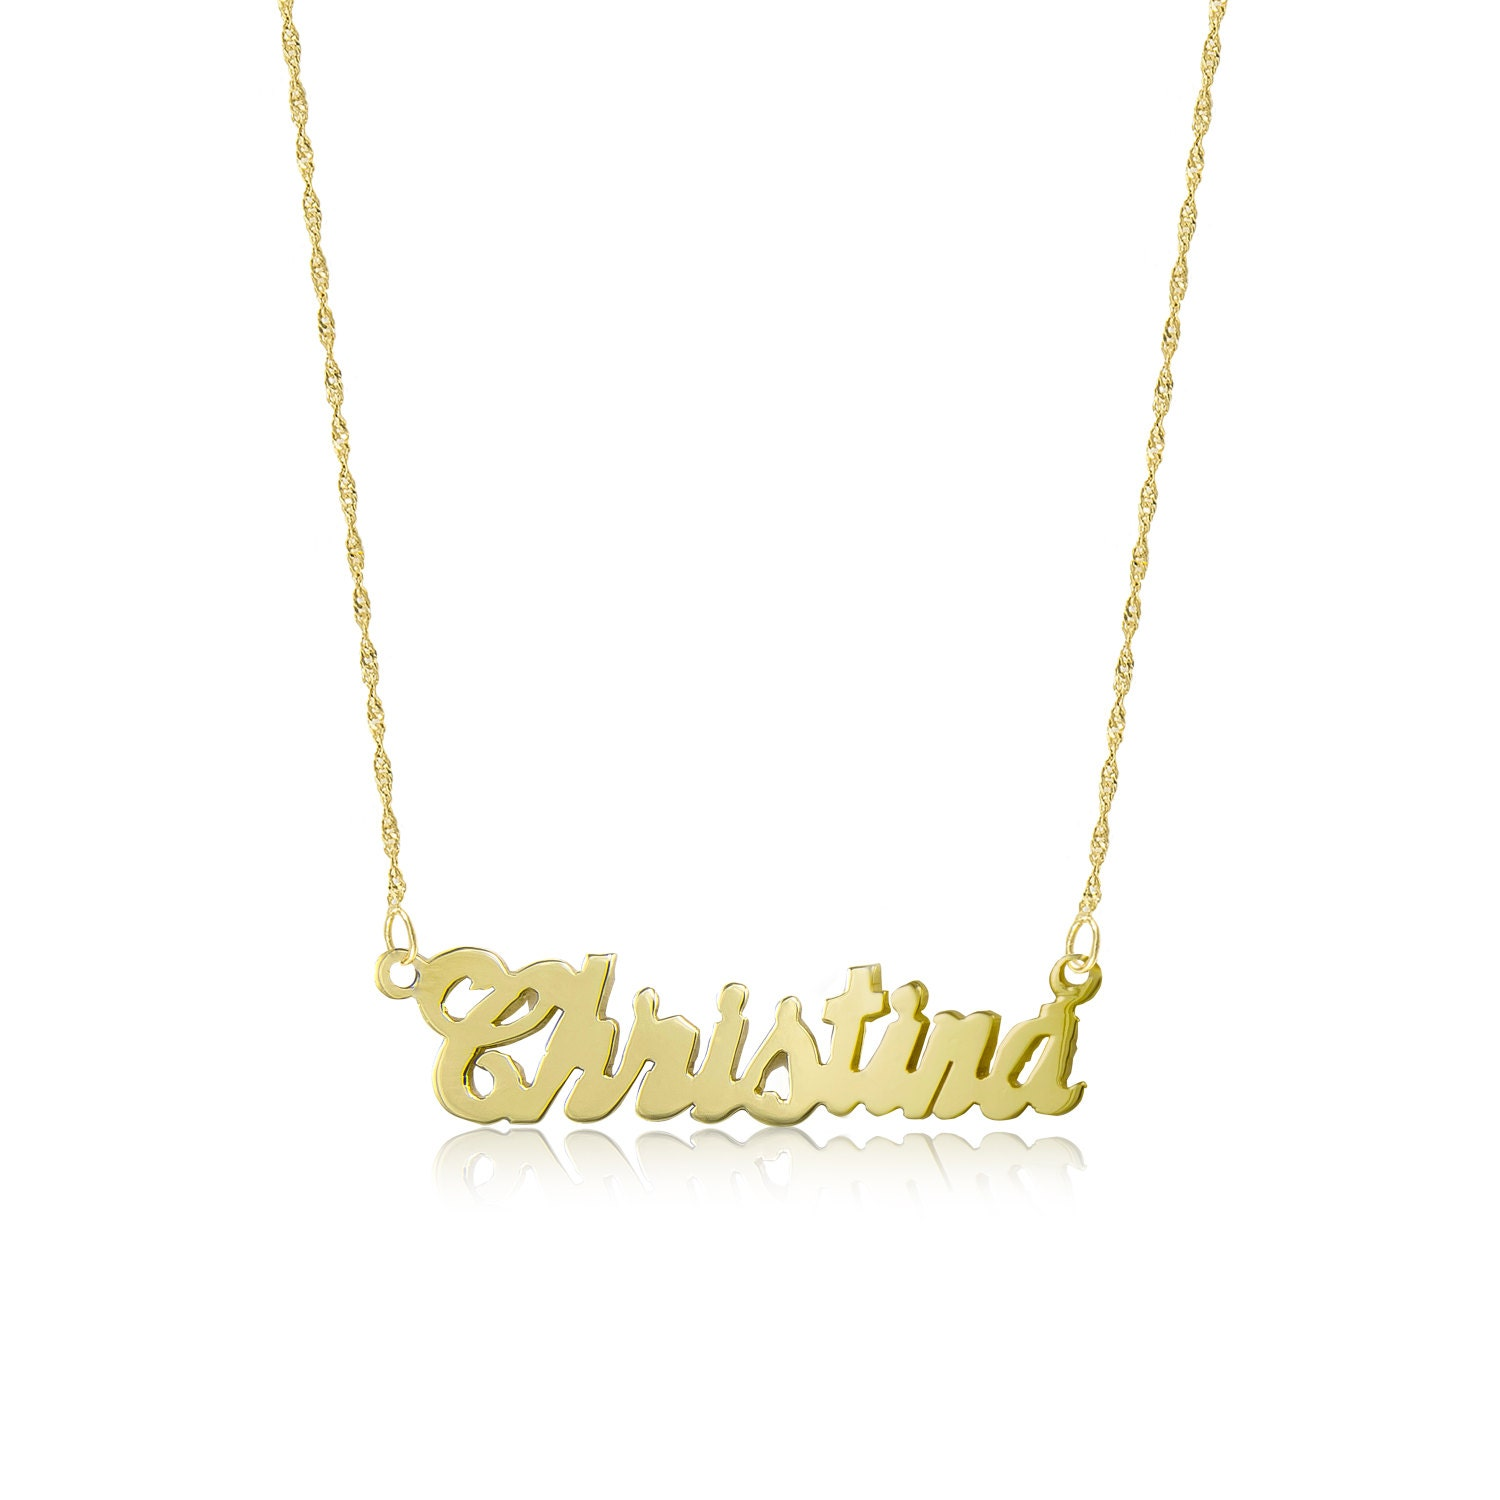 gold necklace letter chain name il fullxfull personalized kooj listing charm solid custom alphabet rolo pendant yellow set